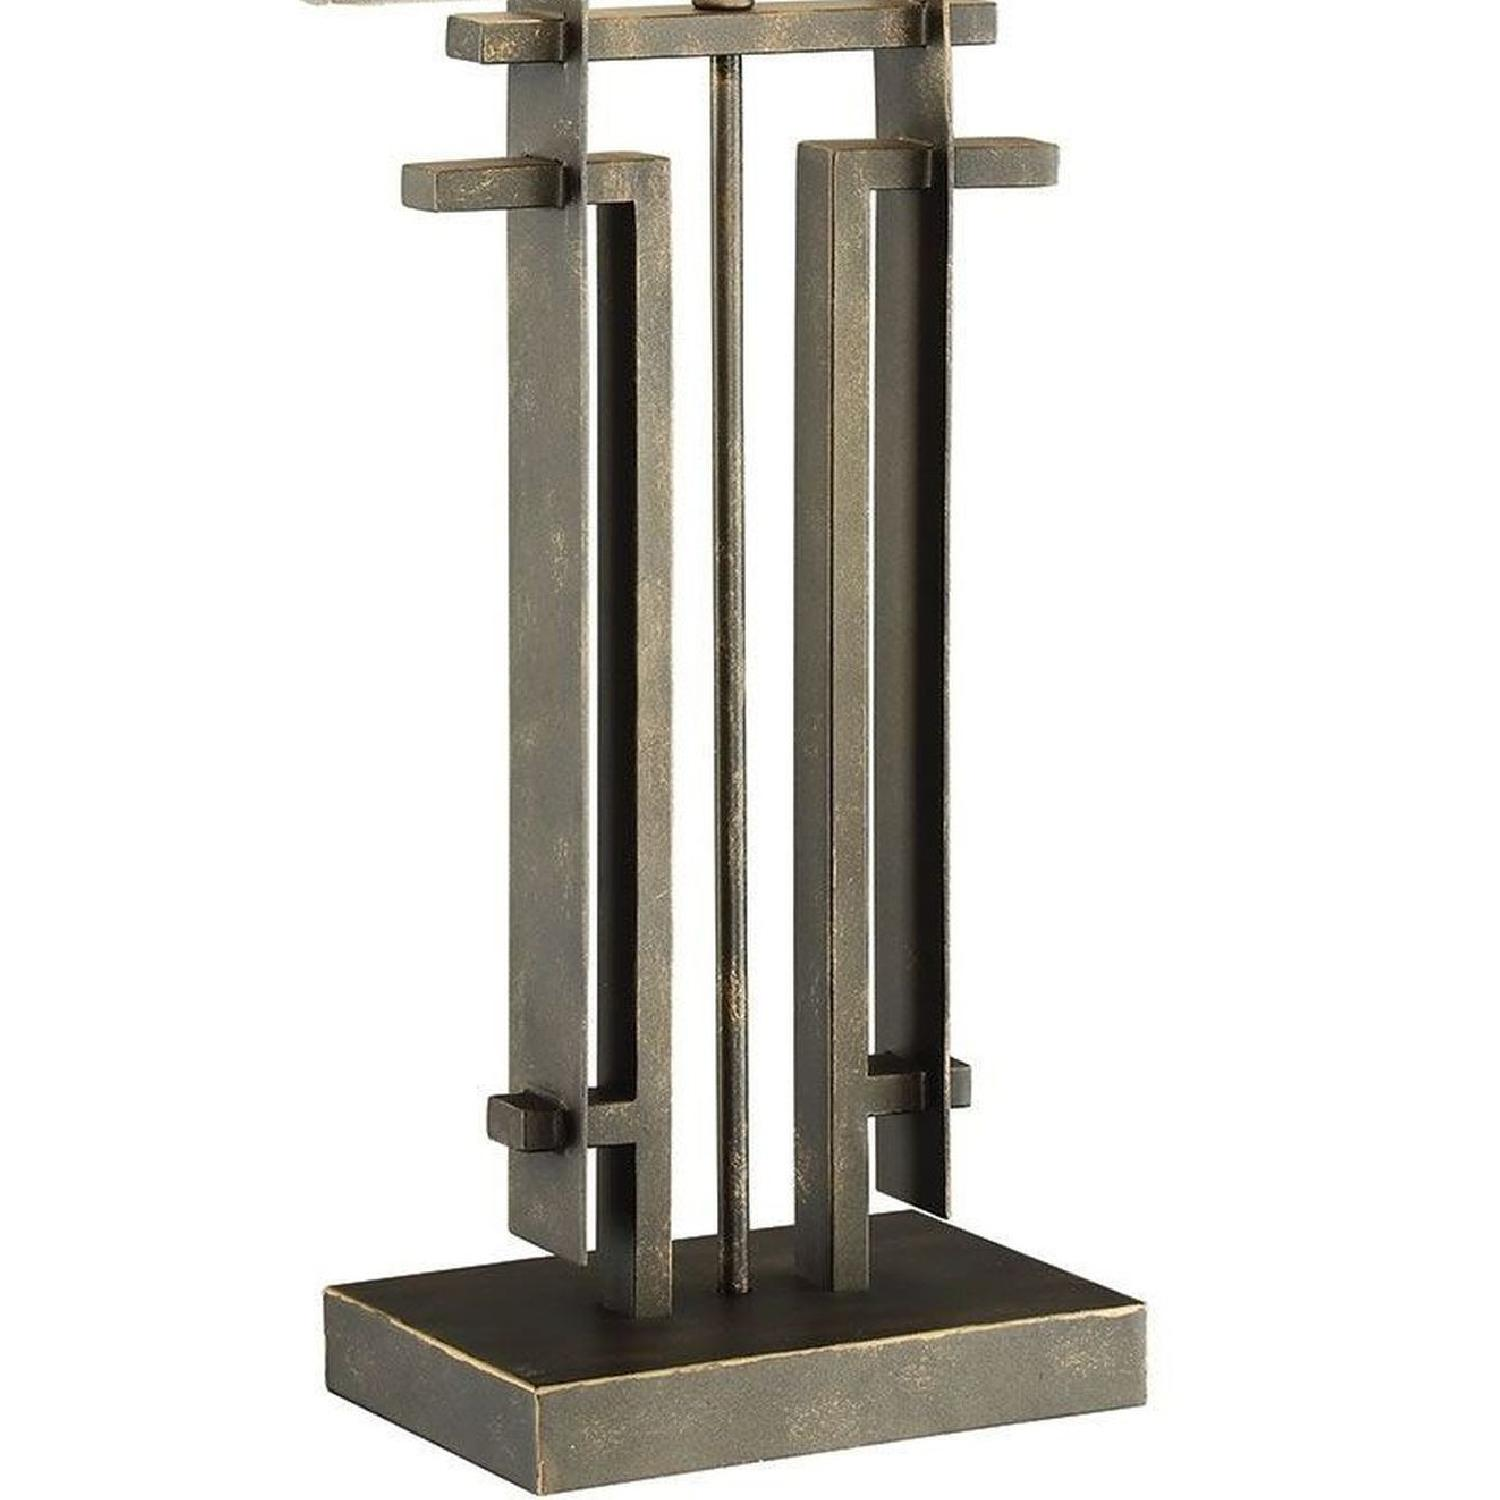 Table Lamp w/ Perpendicular Lines in an Architectural Frame - image-5